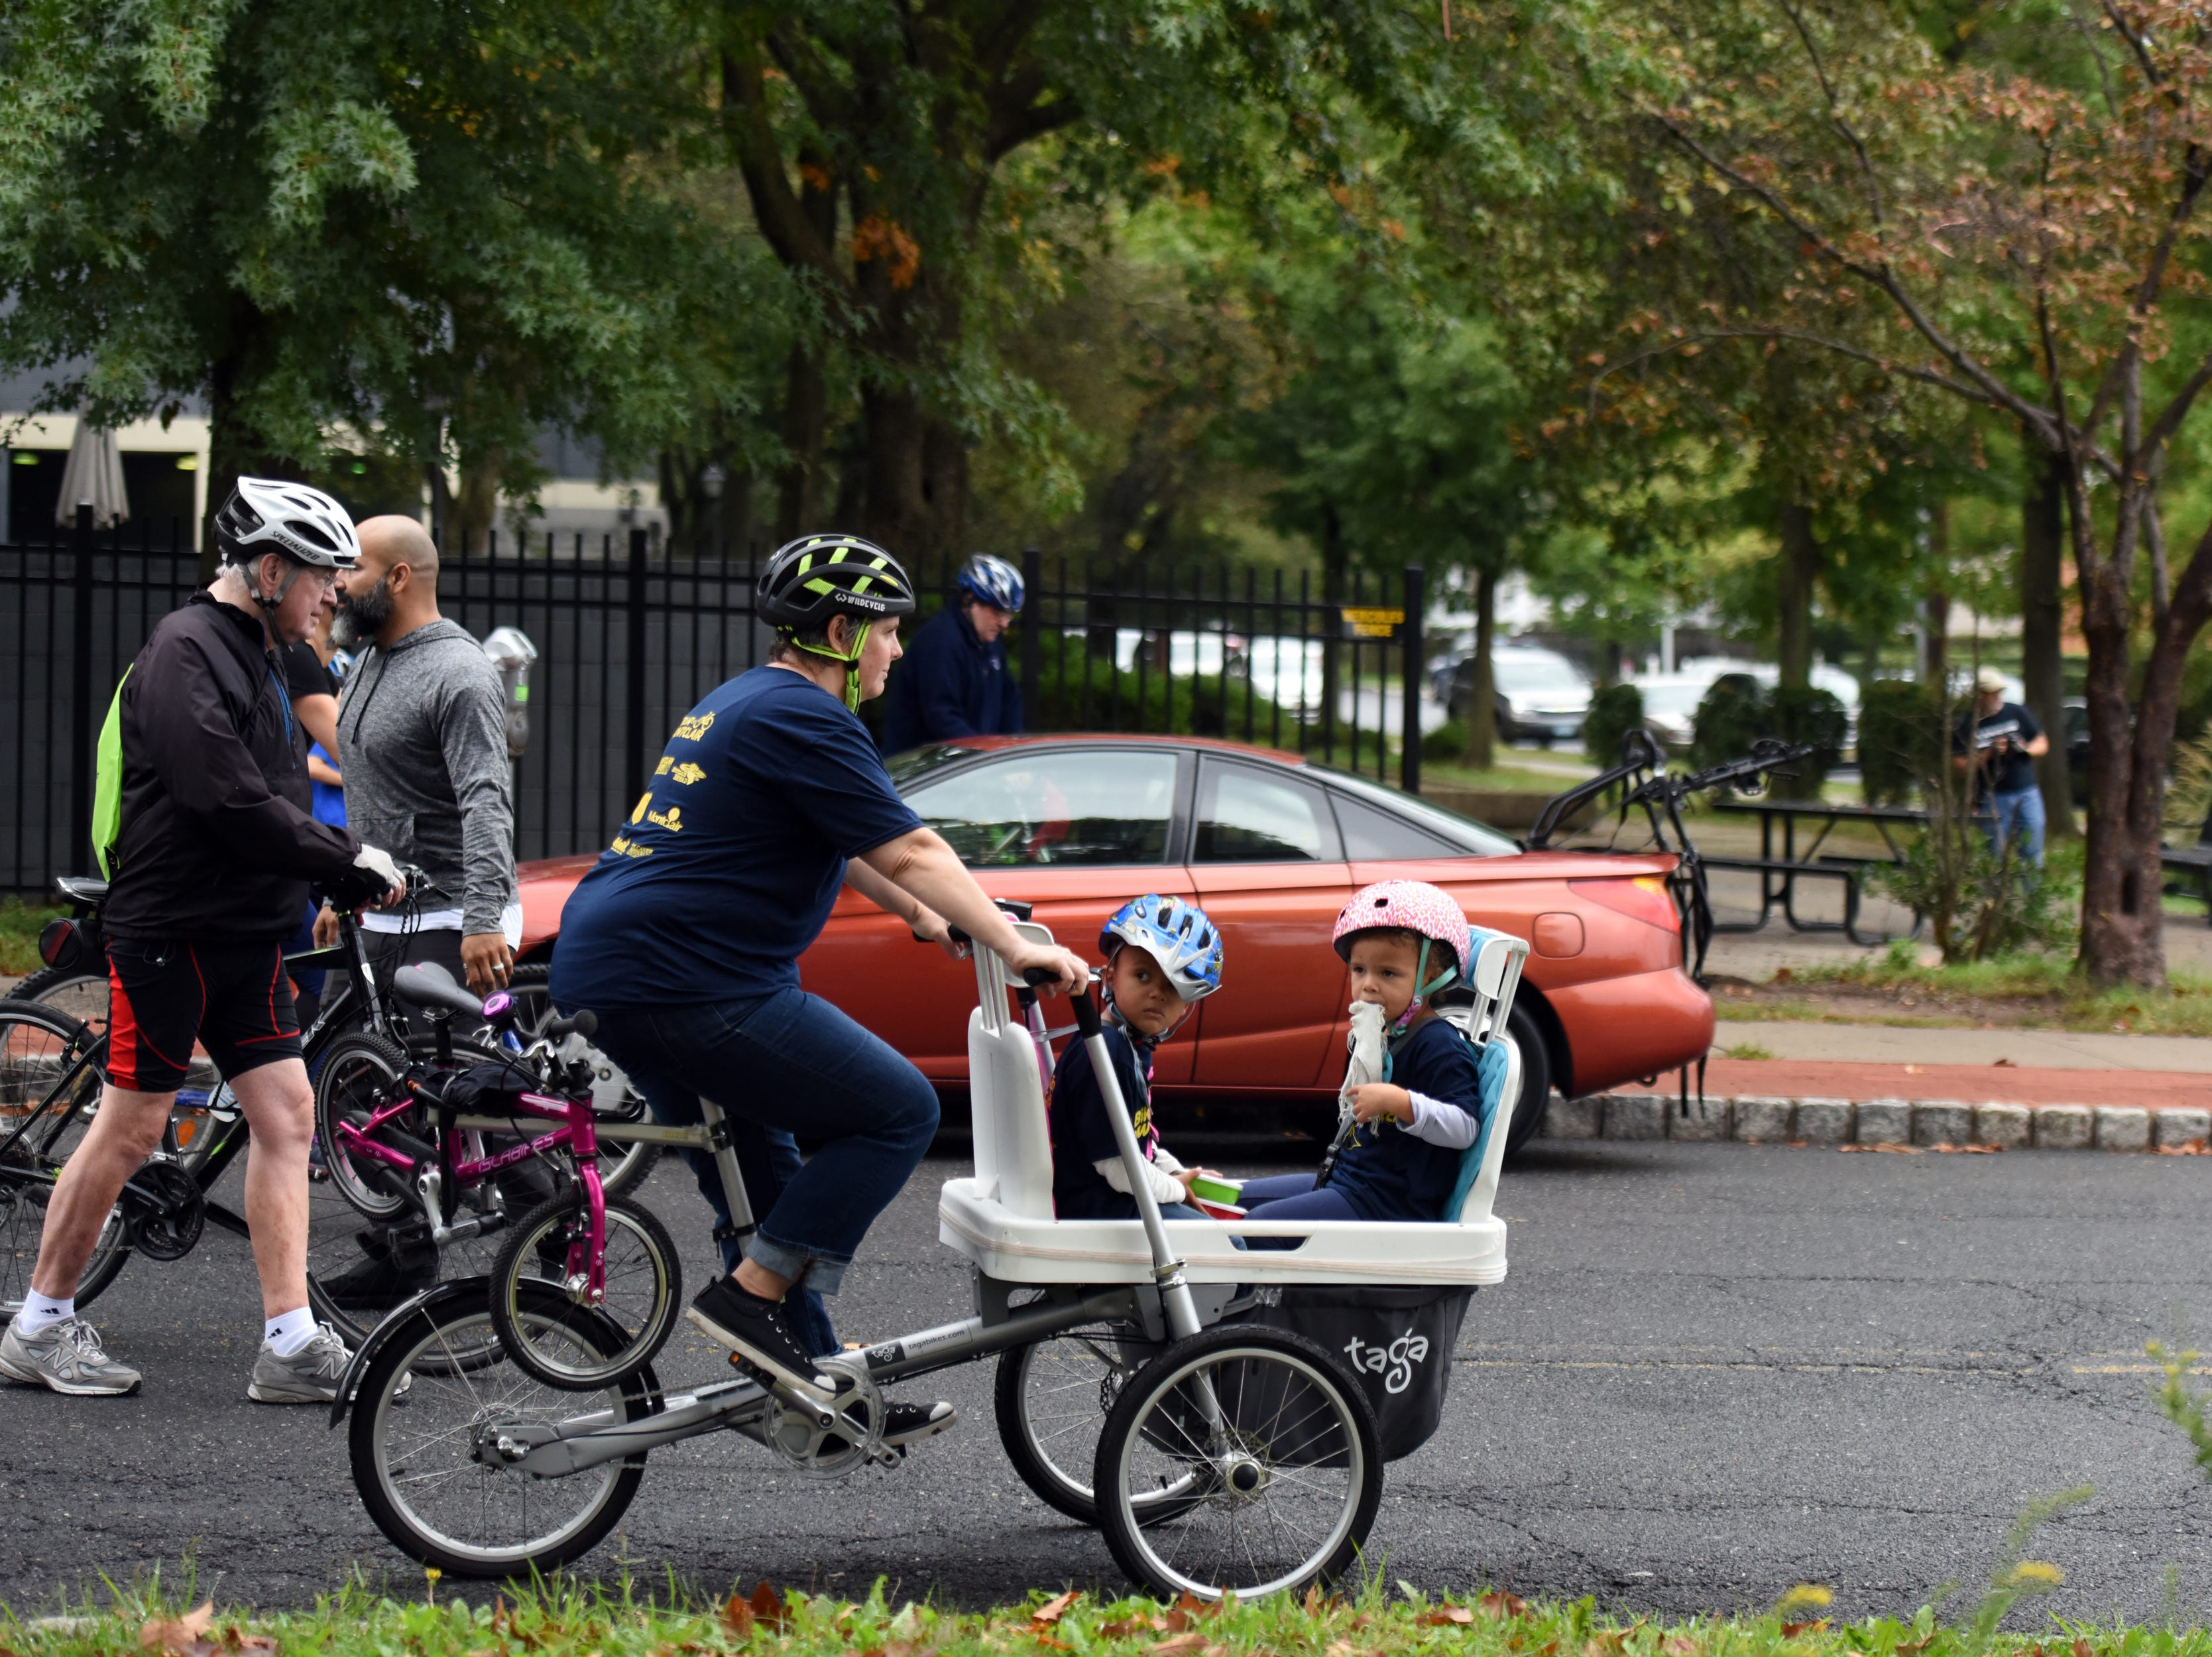 The Tour de Montclair a family-friendly bike ride with 6- and 12- mile options was held on Sunday, October 7, 2018. Cyclists leave for the ride next to Crane Park. Alison Denby heads to the start line with her kids Vivian Page 4, and Aiden Page 3, in tow.